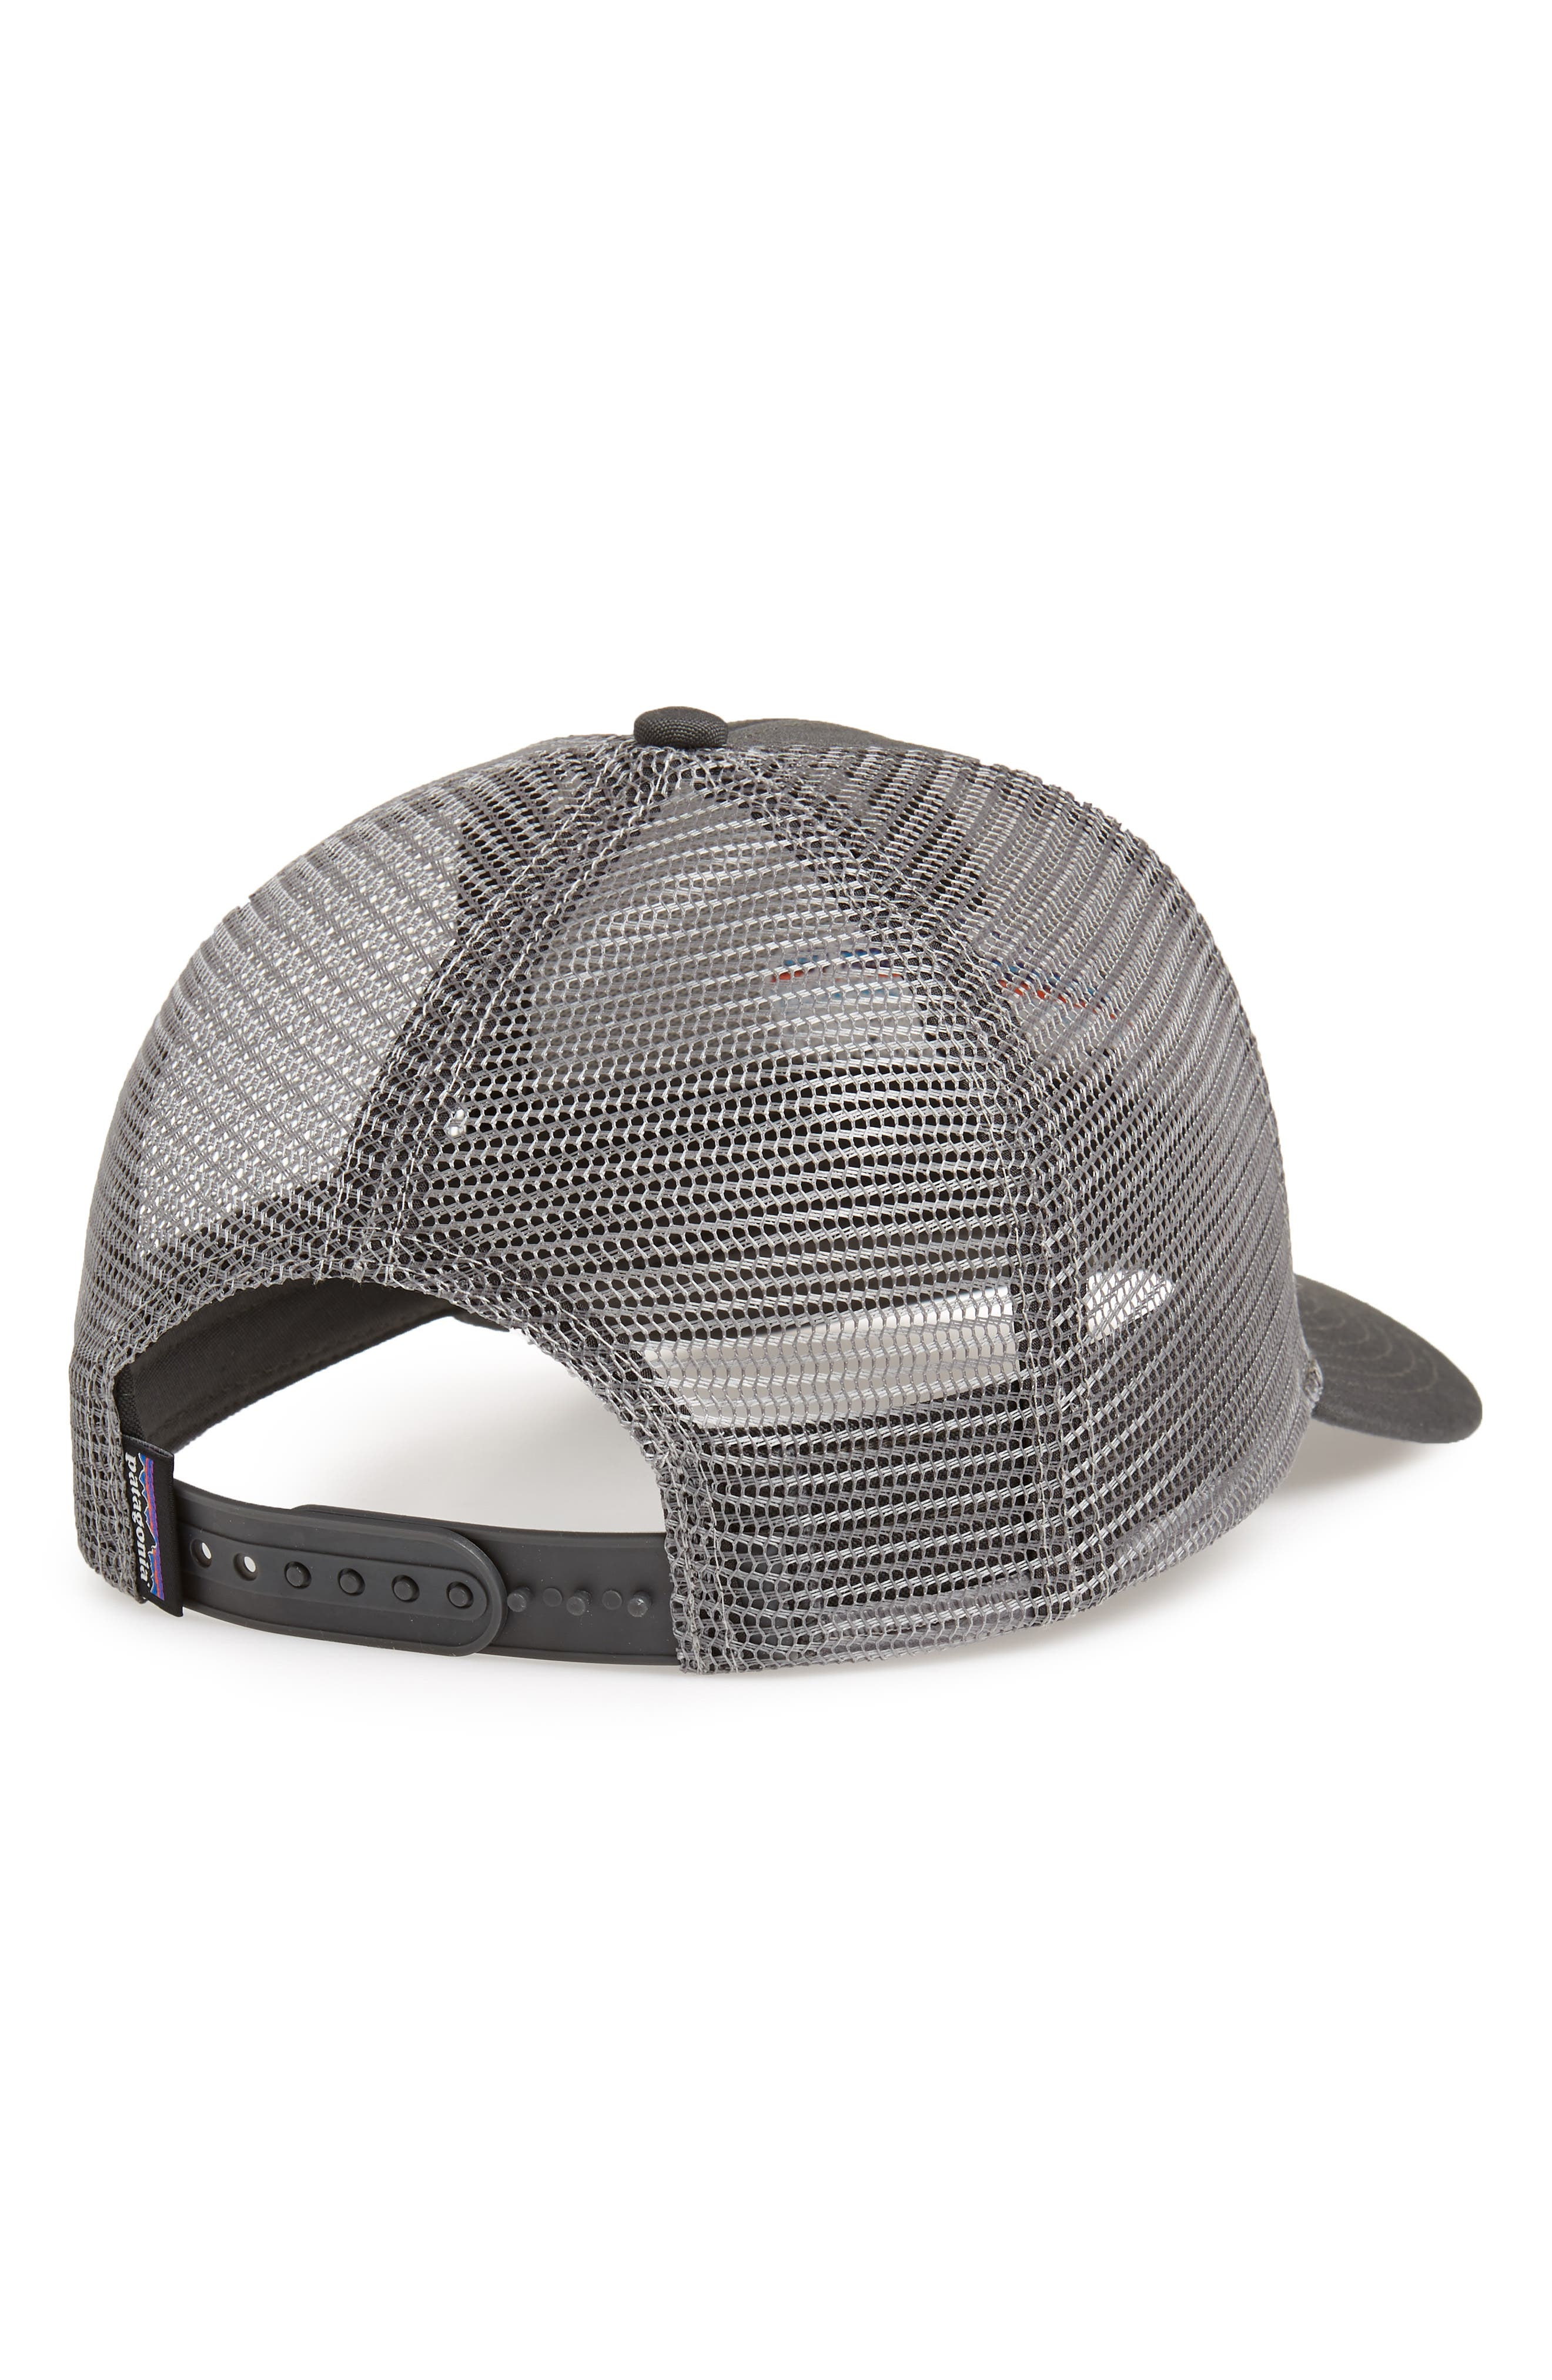 42e7b840746 Patagonia Hats and Backpacks for Men